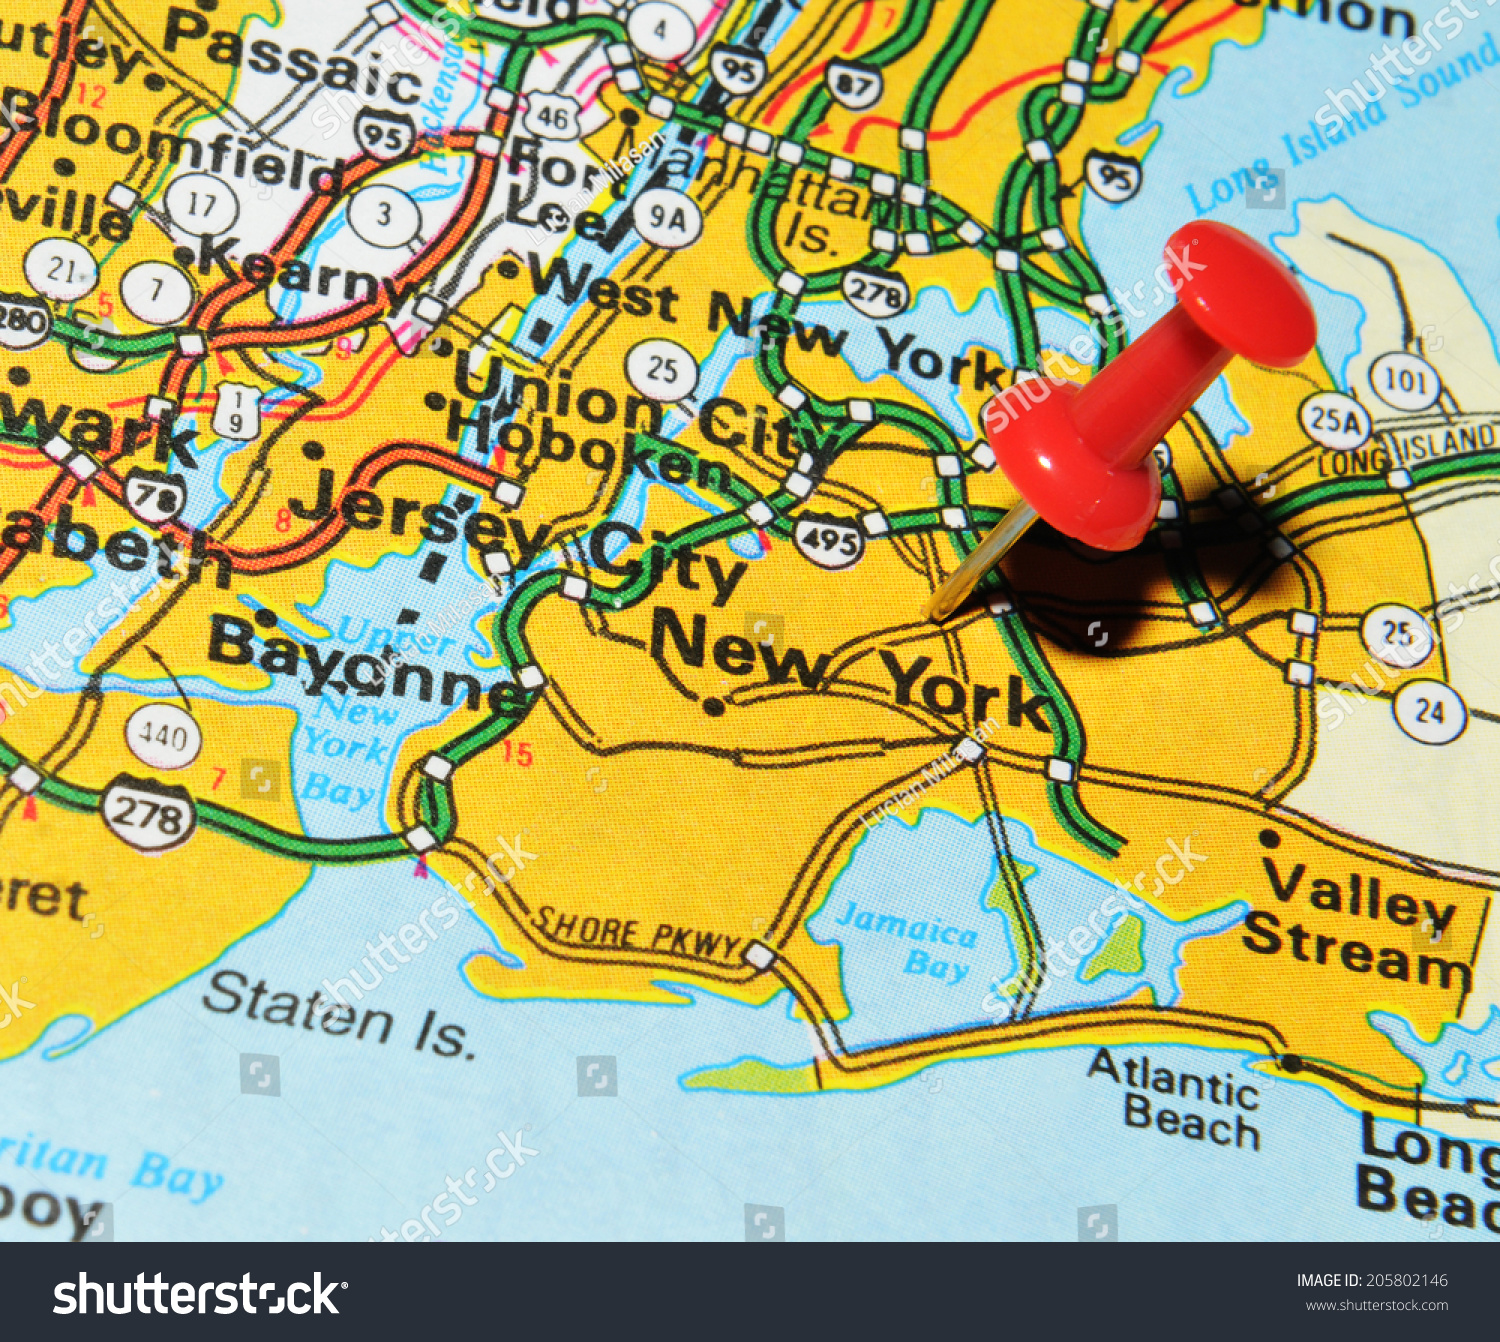 New Us Map Location Of New York City On World Map You Can See A Map